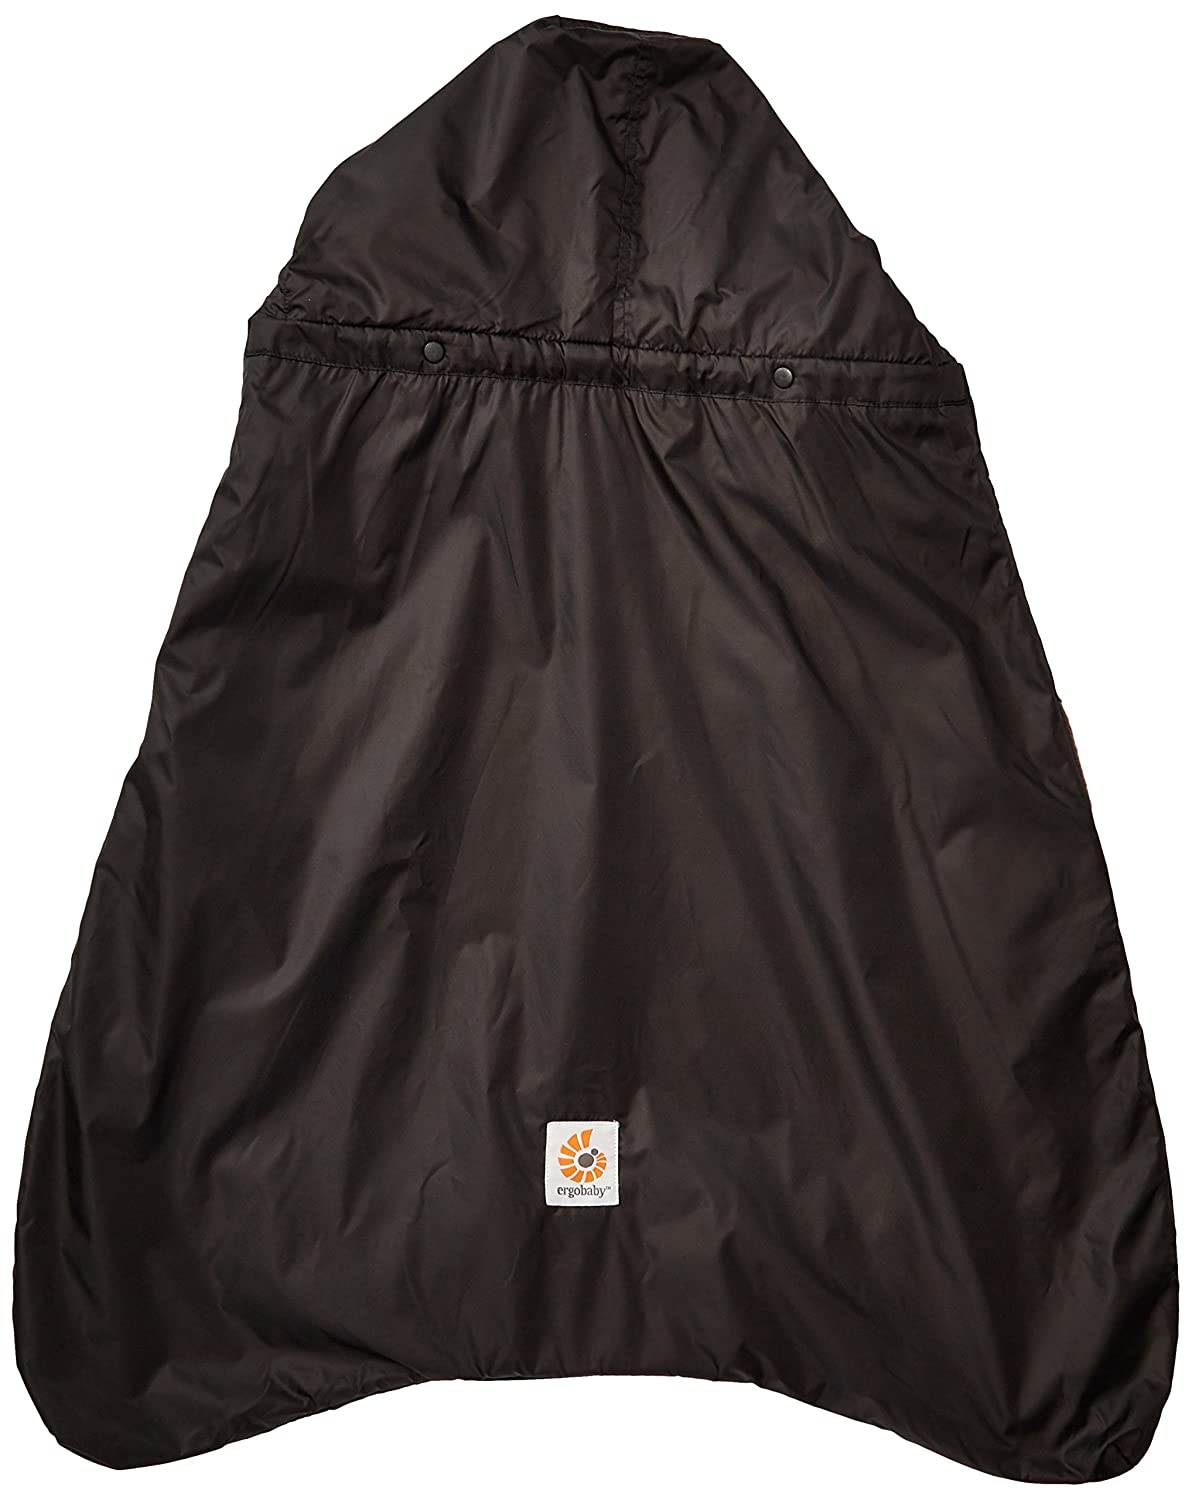 Isolated Rain Cover with Fleece Lining black ERGObaby Winter Weather and Rain Cover for Baby Carrier Waterproof